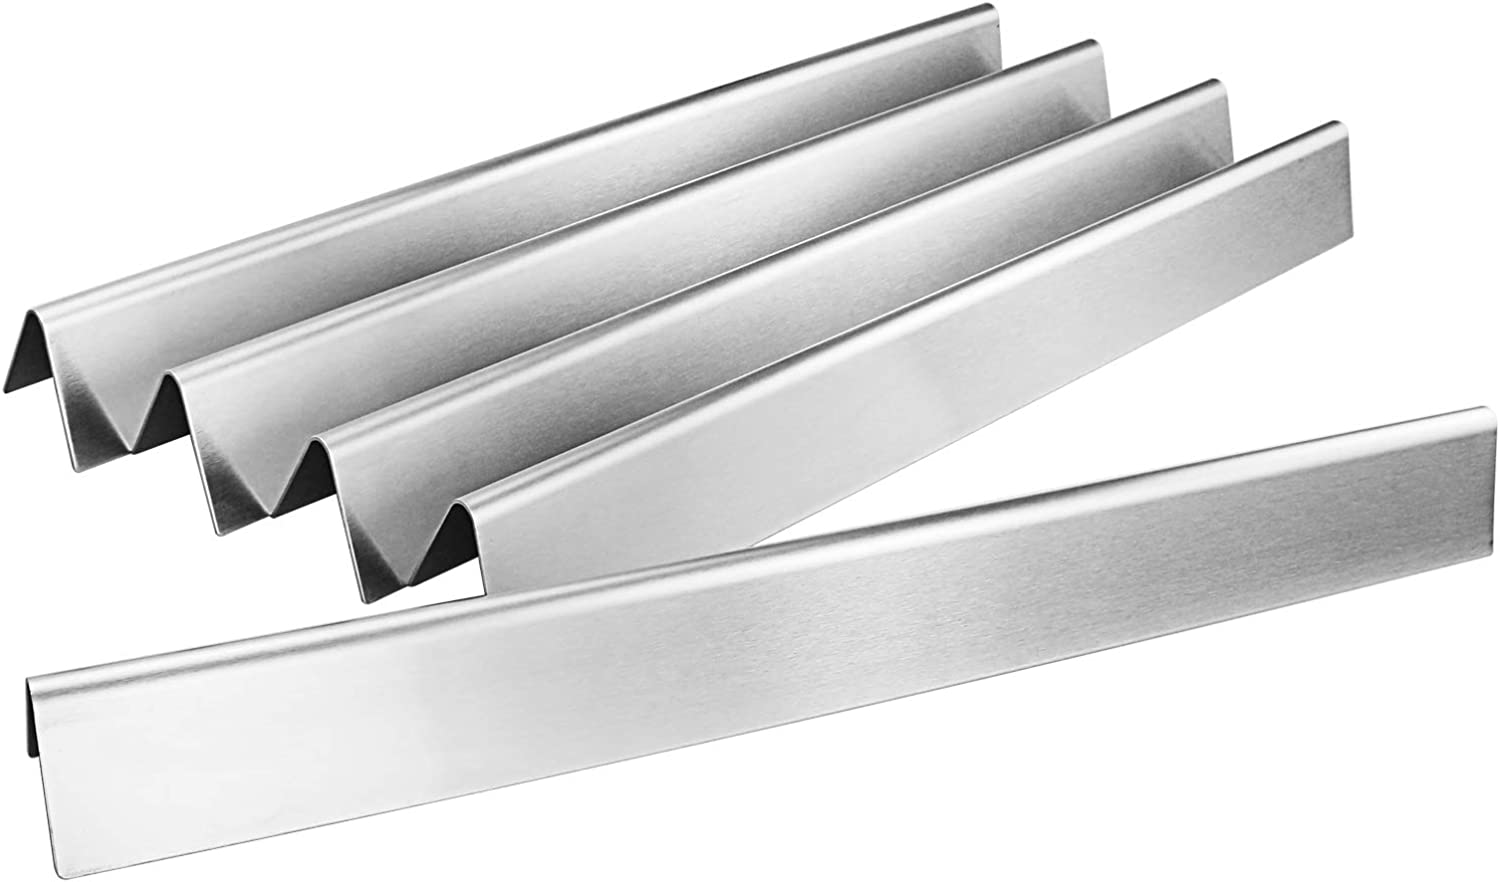 Uniflasy 22.5 Inch Flavorizer Bars for Weber Spirit 300 with Side Control, Spirit E310, E320, Genesis Gold Silver Platinum B/C, Spirit 700, Weber 900, Stainless Steel Heat Plates for Weber 7537, 7536